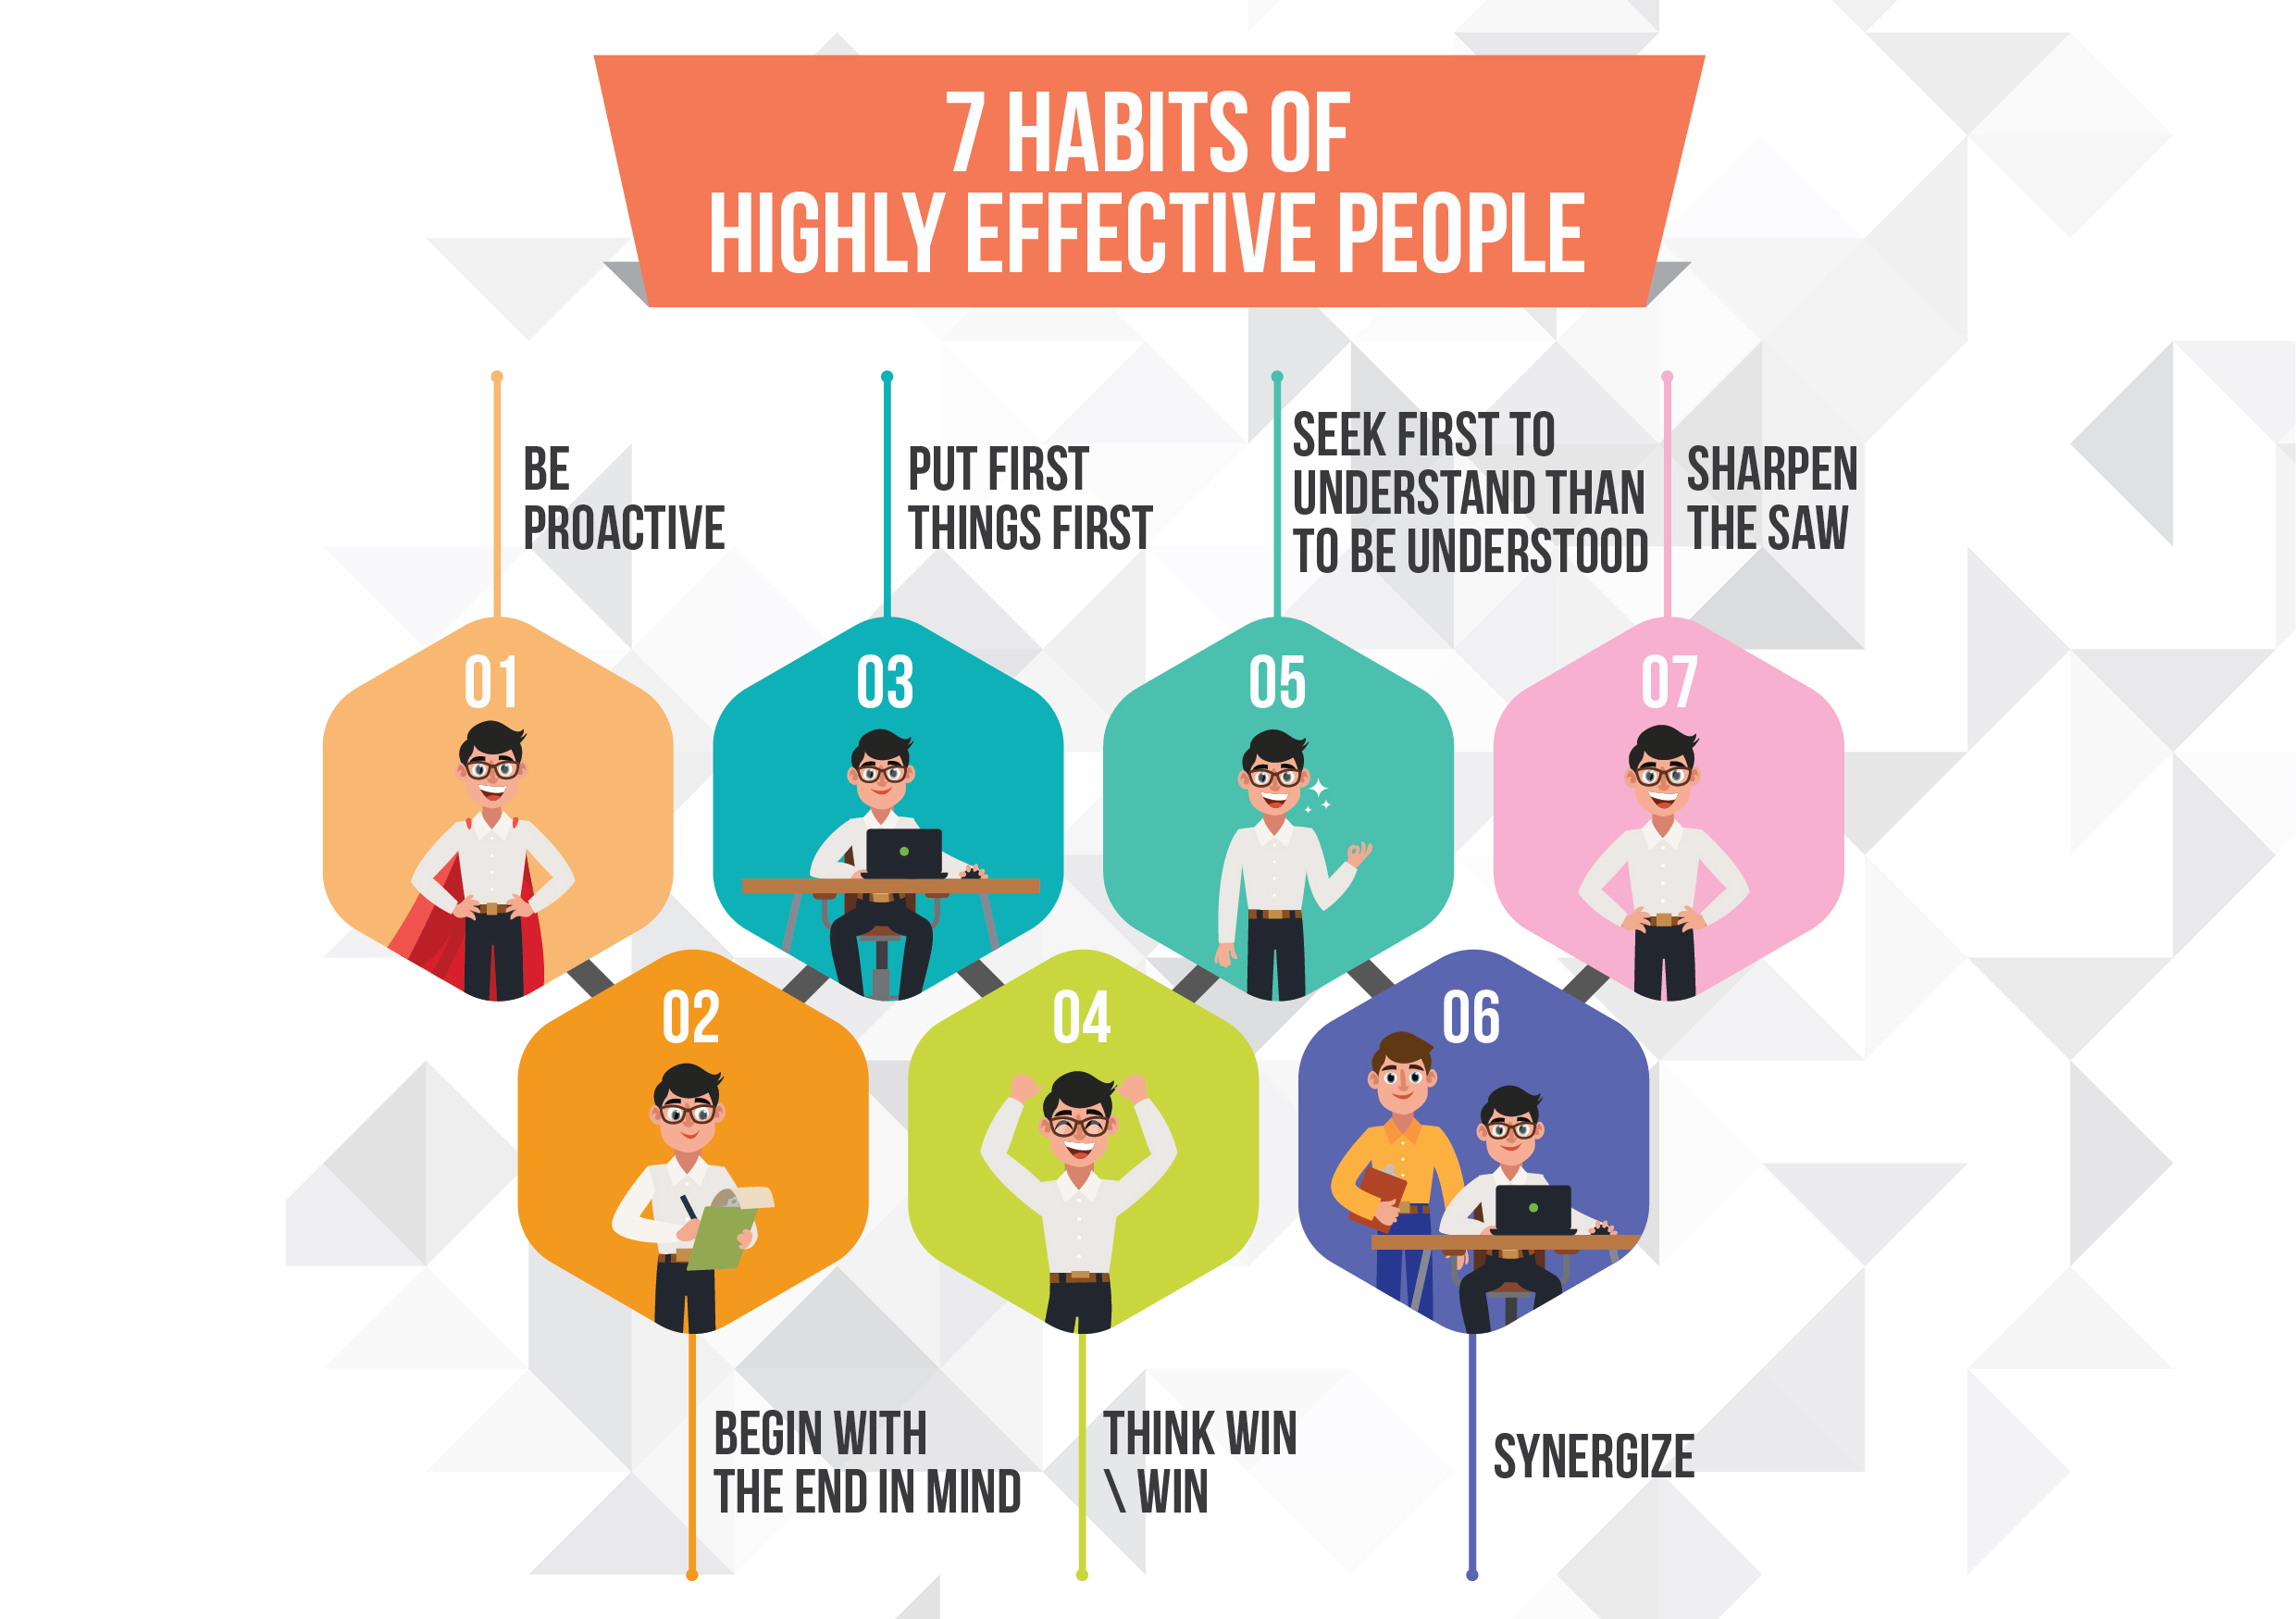 7 Habits of Highly Effective People Summary